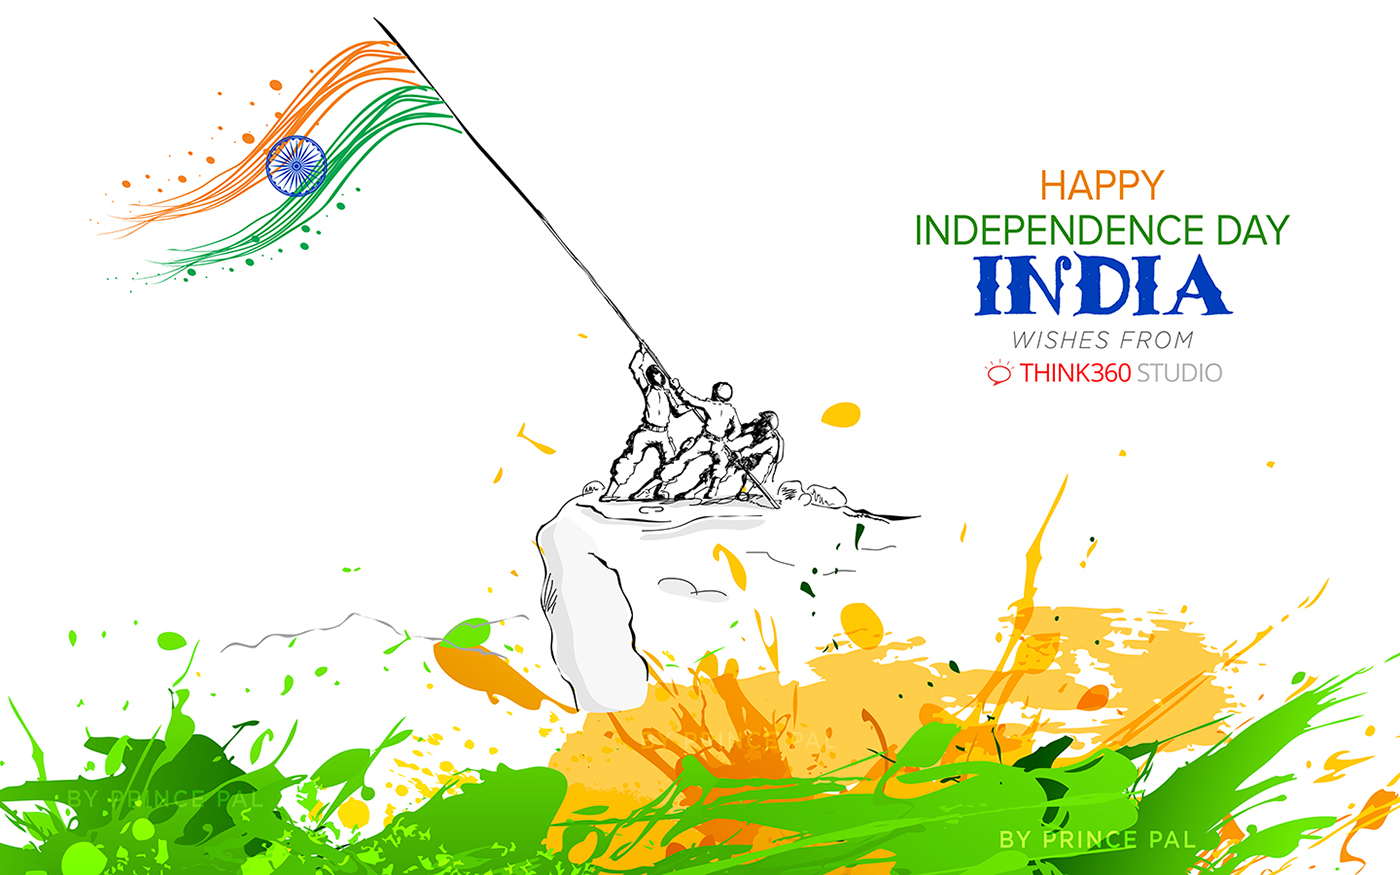 India Independence Day Wallpaper By Prince Pal On Behance